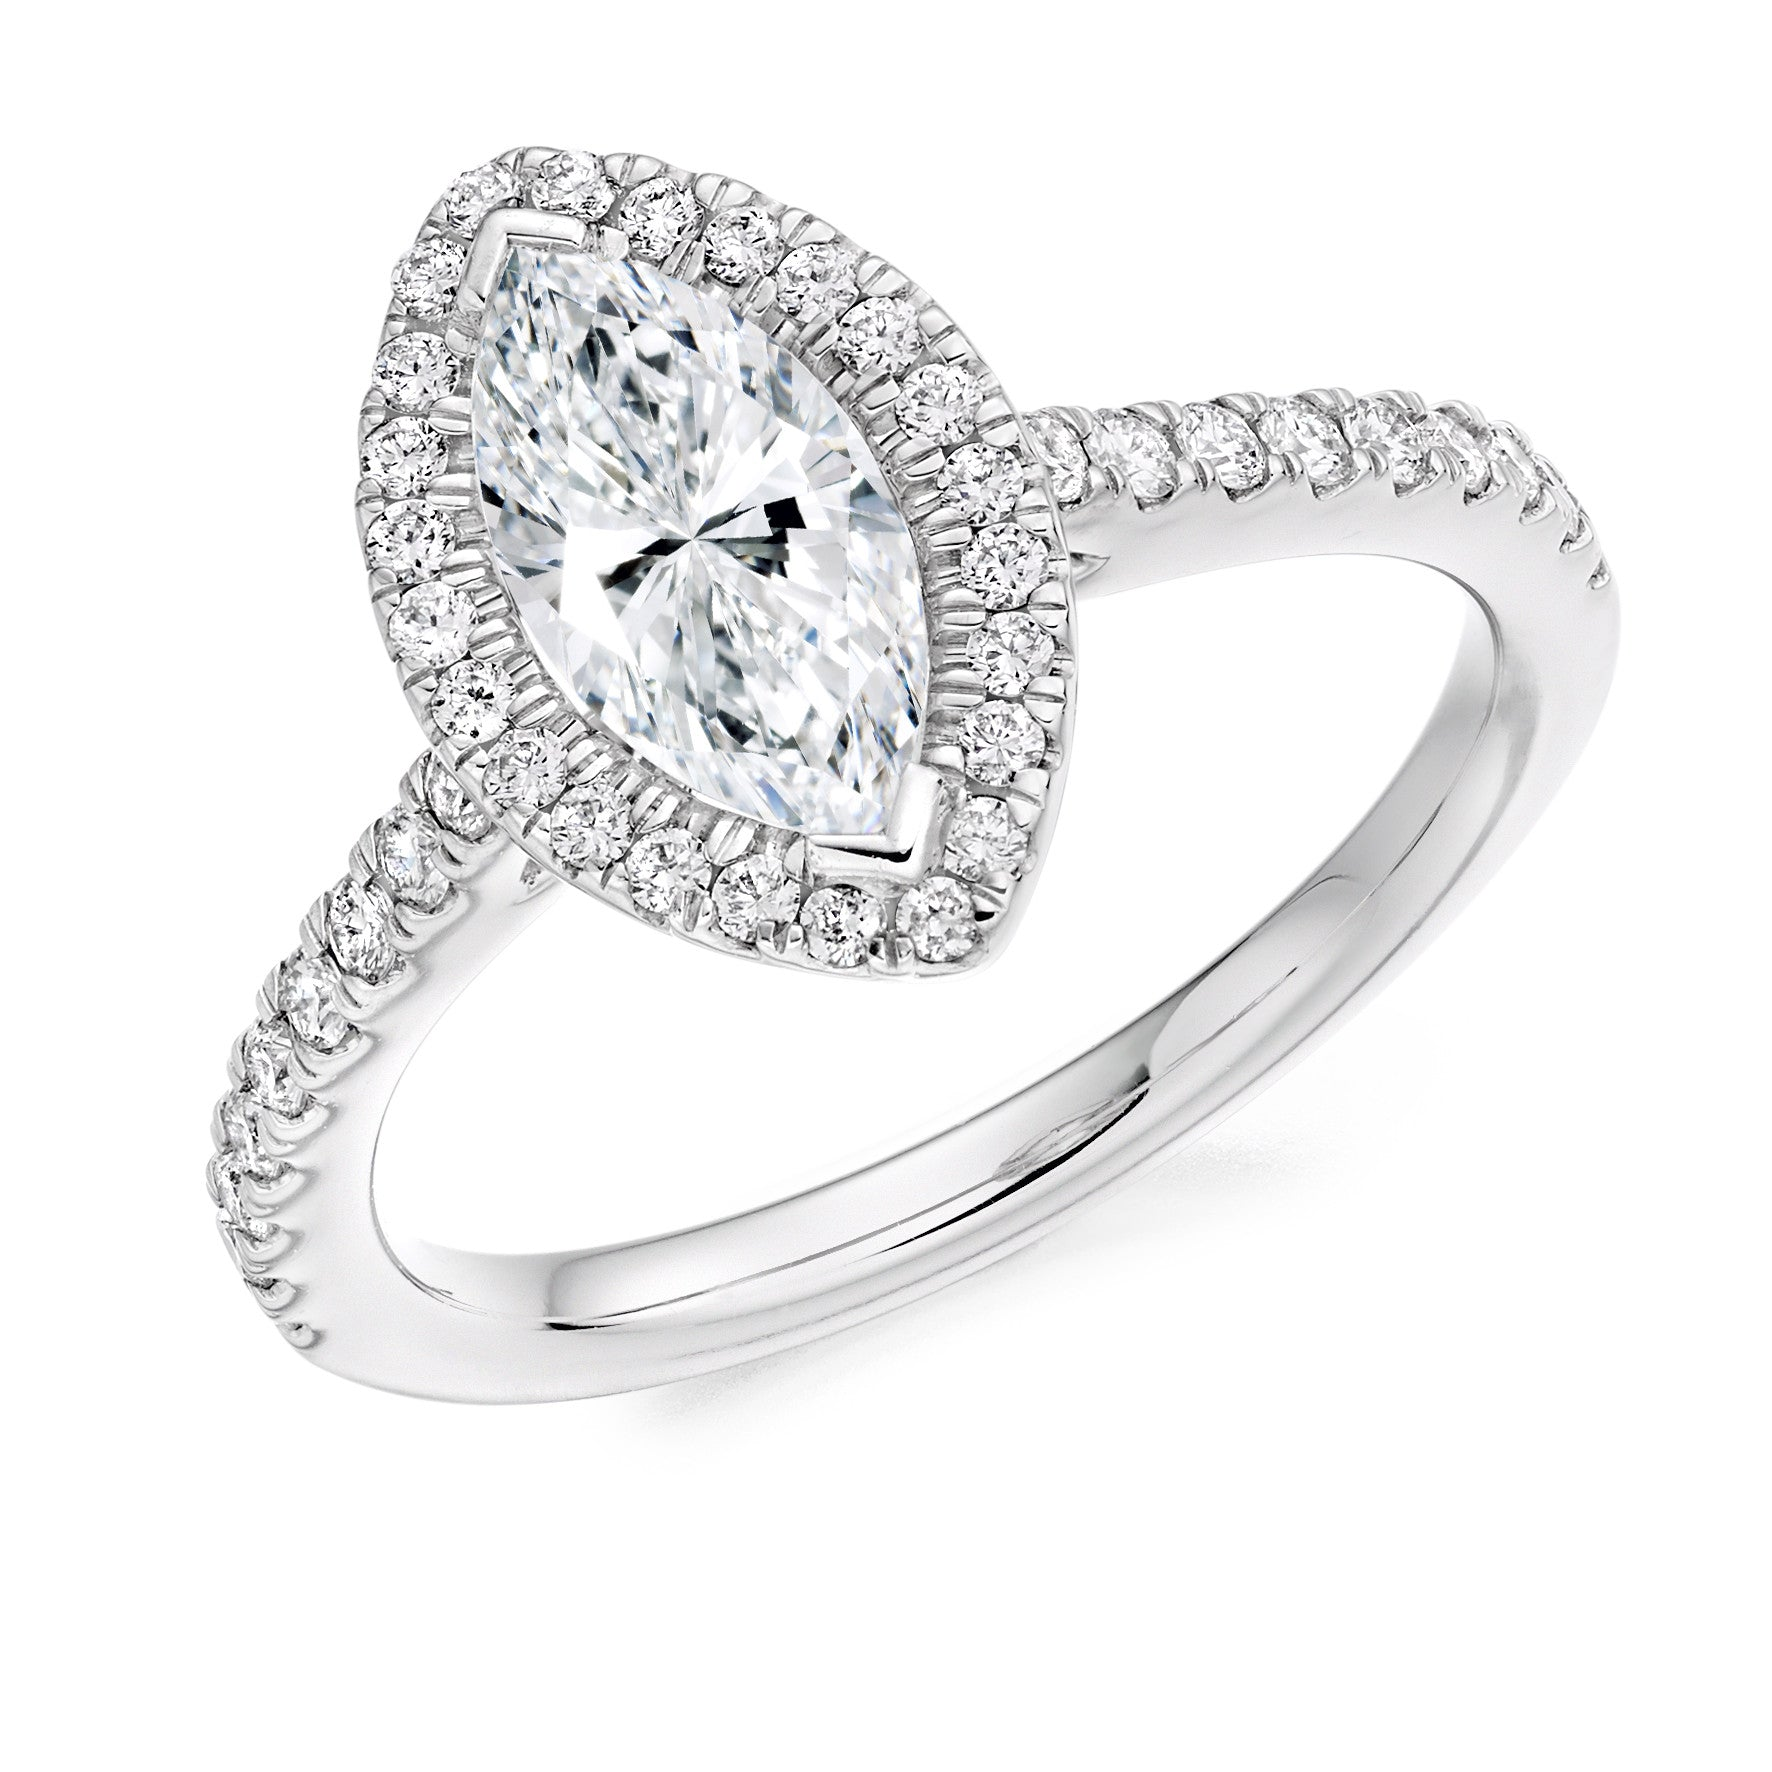 her the for pics love band rings candide online designs in buy ring jewellery india platinum